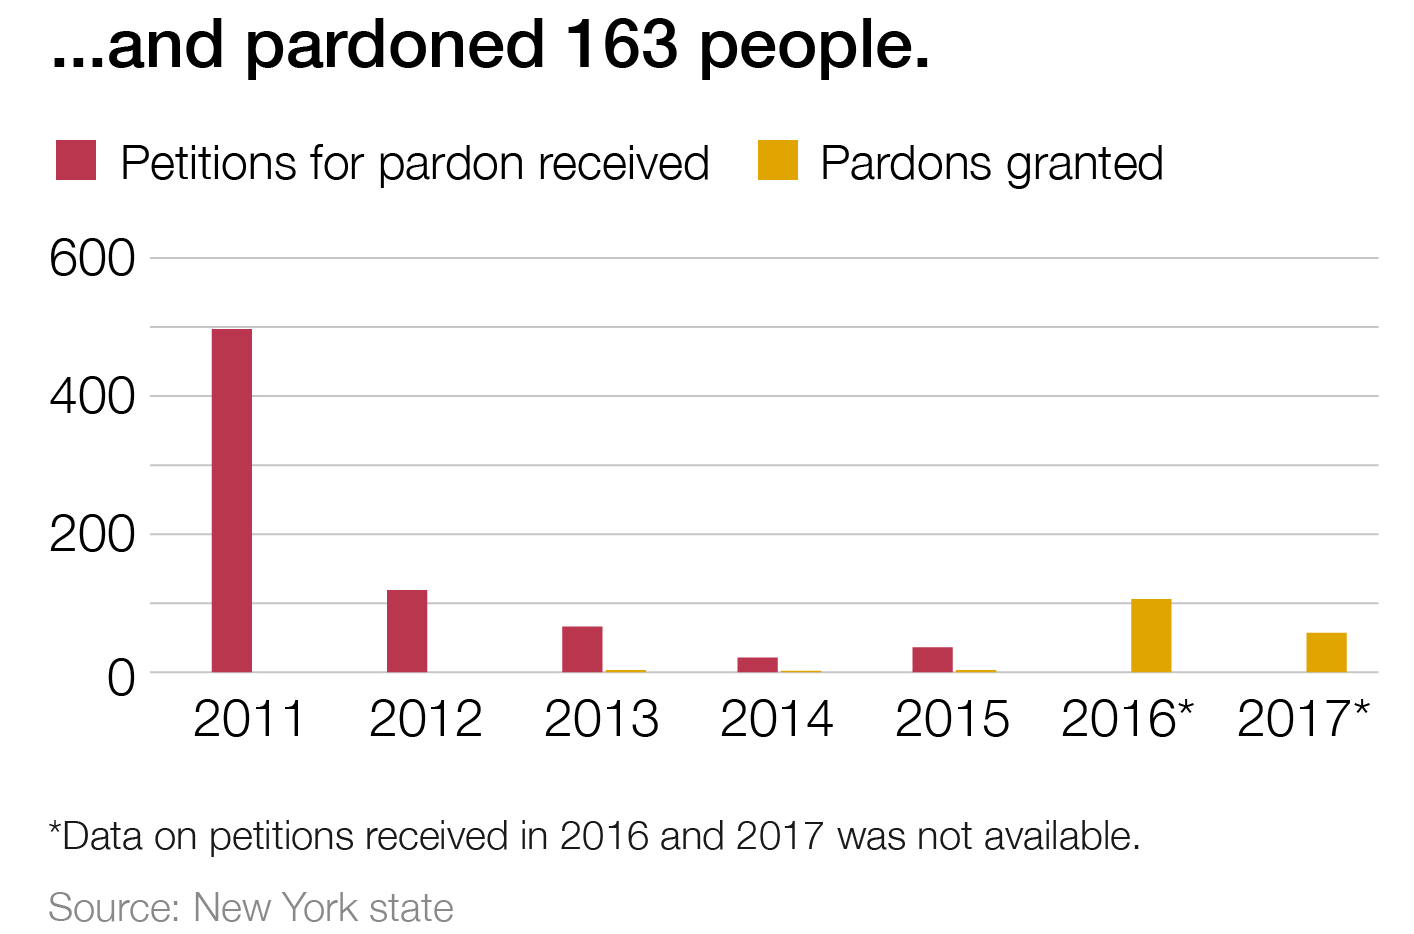 A graph displaying the numbers of petitions for pardon received versus pardons granted from 2011-2017. There are nearly 500 in 2011 with none granted, and over 100 in 2012 with none granted. From 2013-2015 there are between 50 and 100 petitions with very small numbers granted. 50-100 pardons were granted in each of 2016 and 2017. Data on petitions received in 2016 and 2017 was not available.